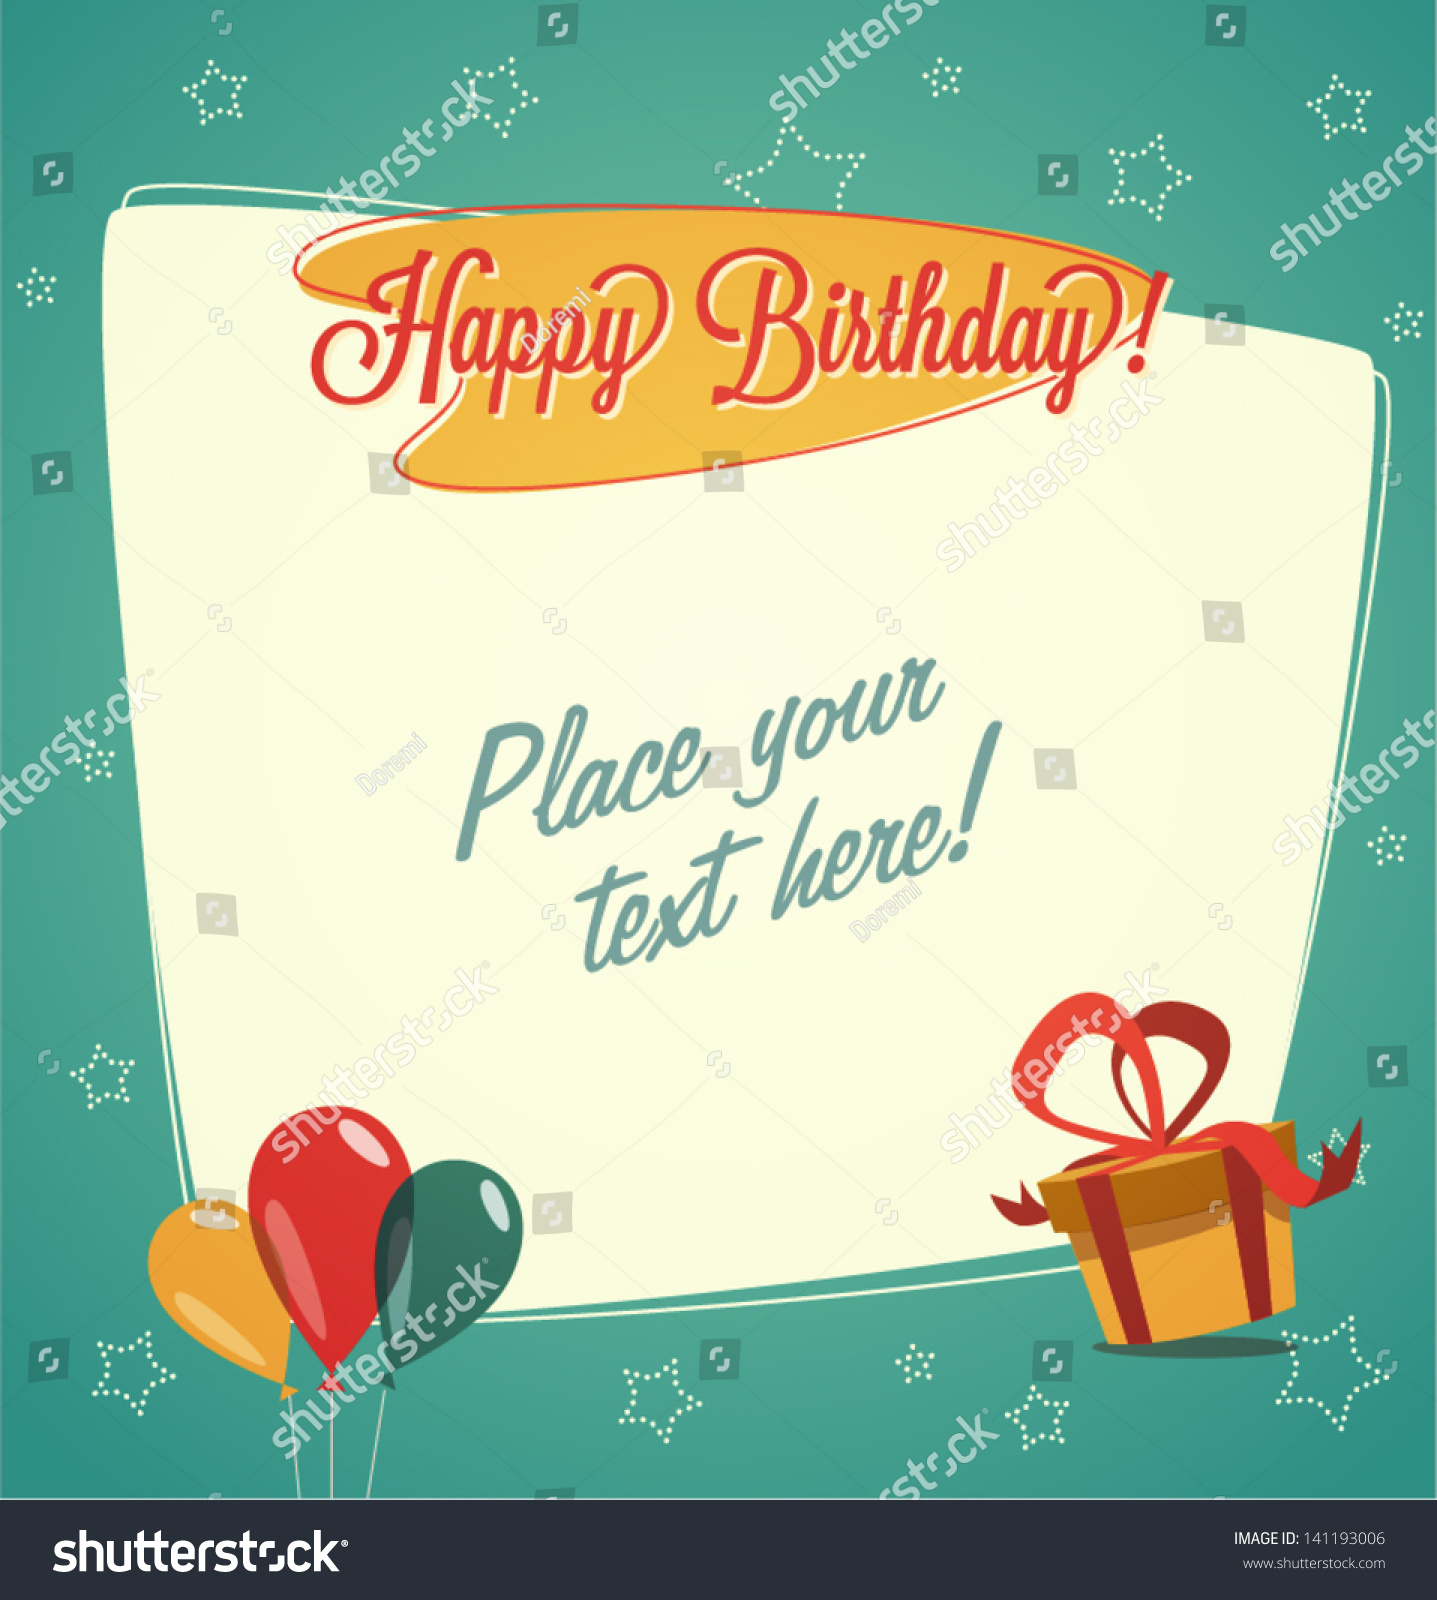 retro vintage happy birthday card stock vector illustration, Birthday card